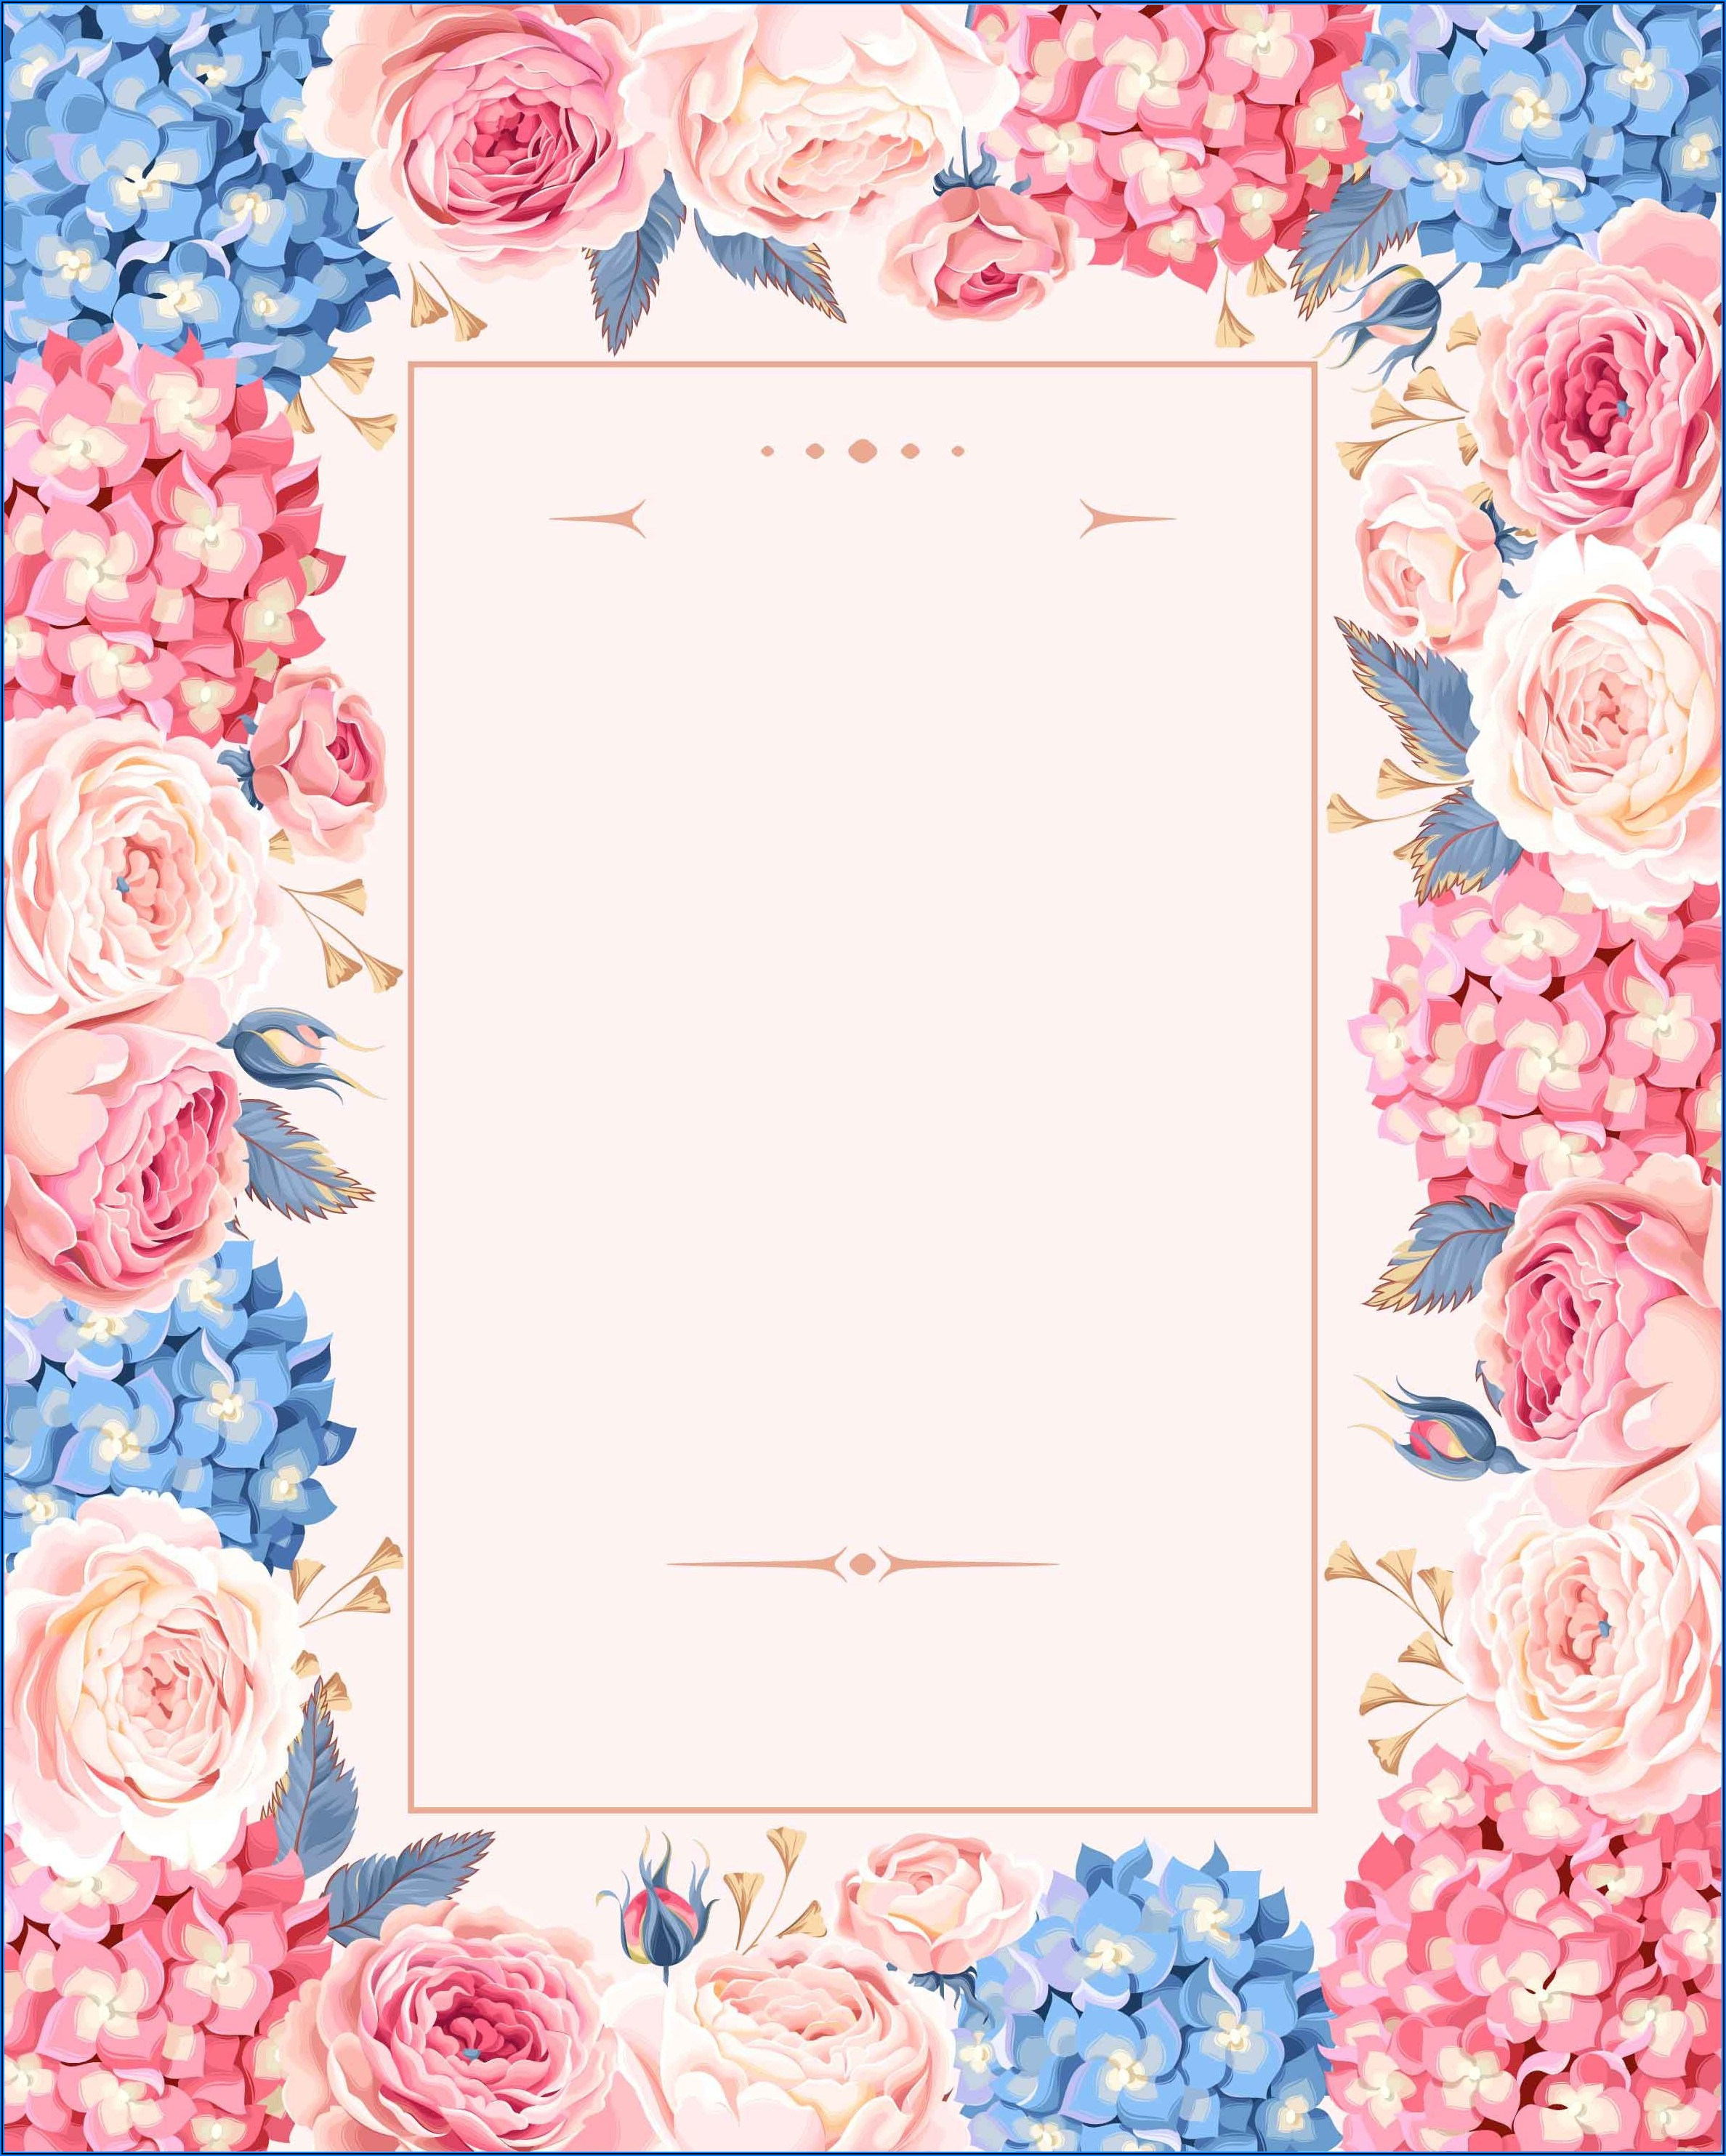 Floral Wedding Invitation Design Background